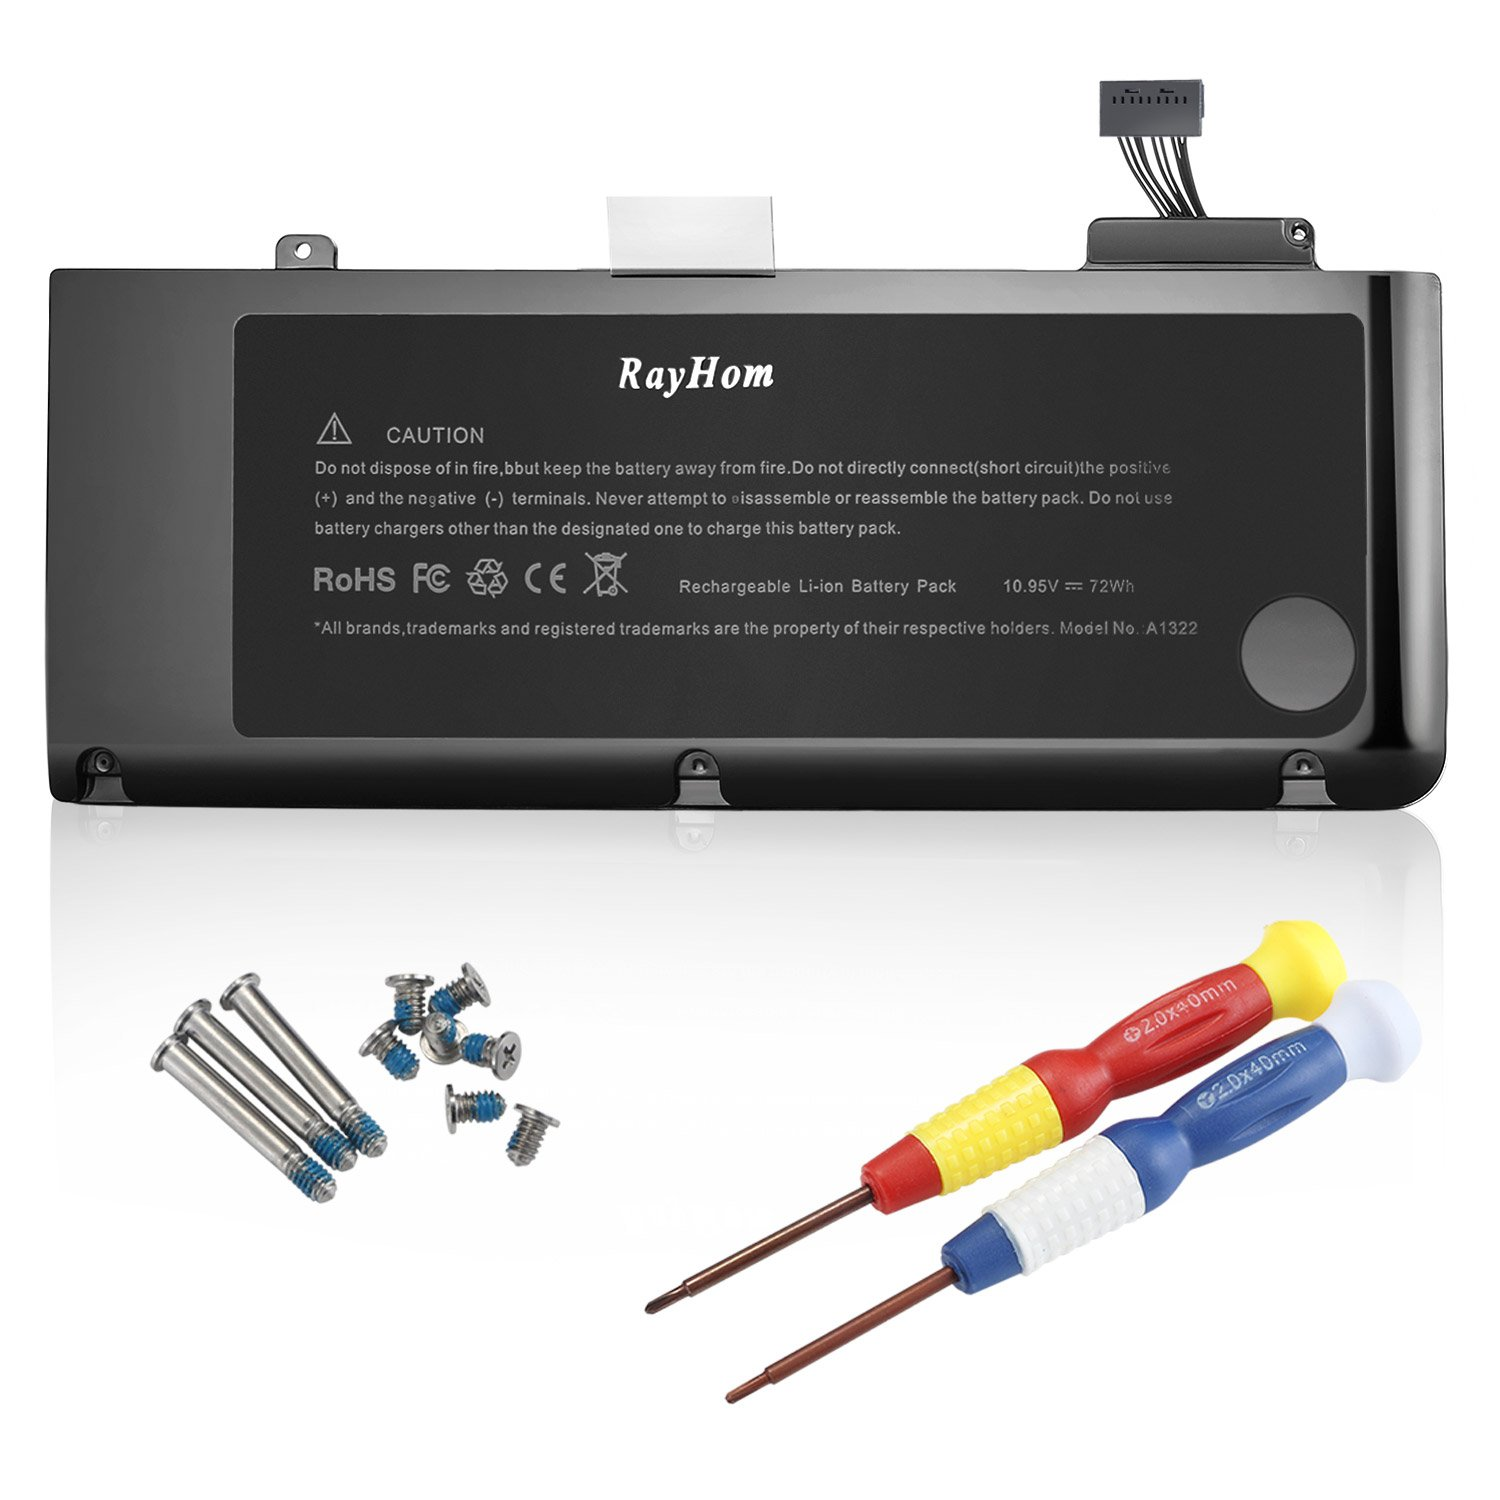 RayHom A1322 Battery for Apple Macbook Pro 13 inch A1322 A1278 Battery [2009 2010 2011 2012 Version] 661-5229 661-5557 020-6547-A 020-6765-A [18 Months Warranty 10.95V/72Wh]